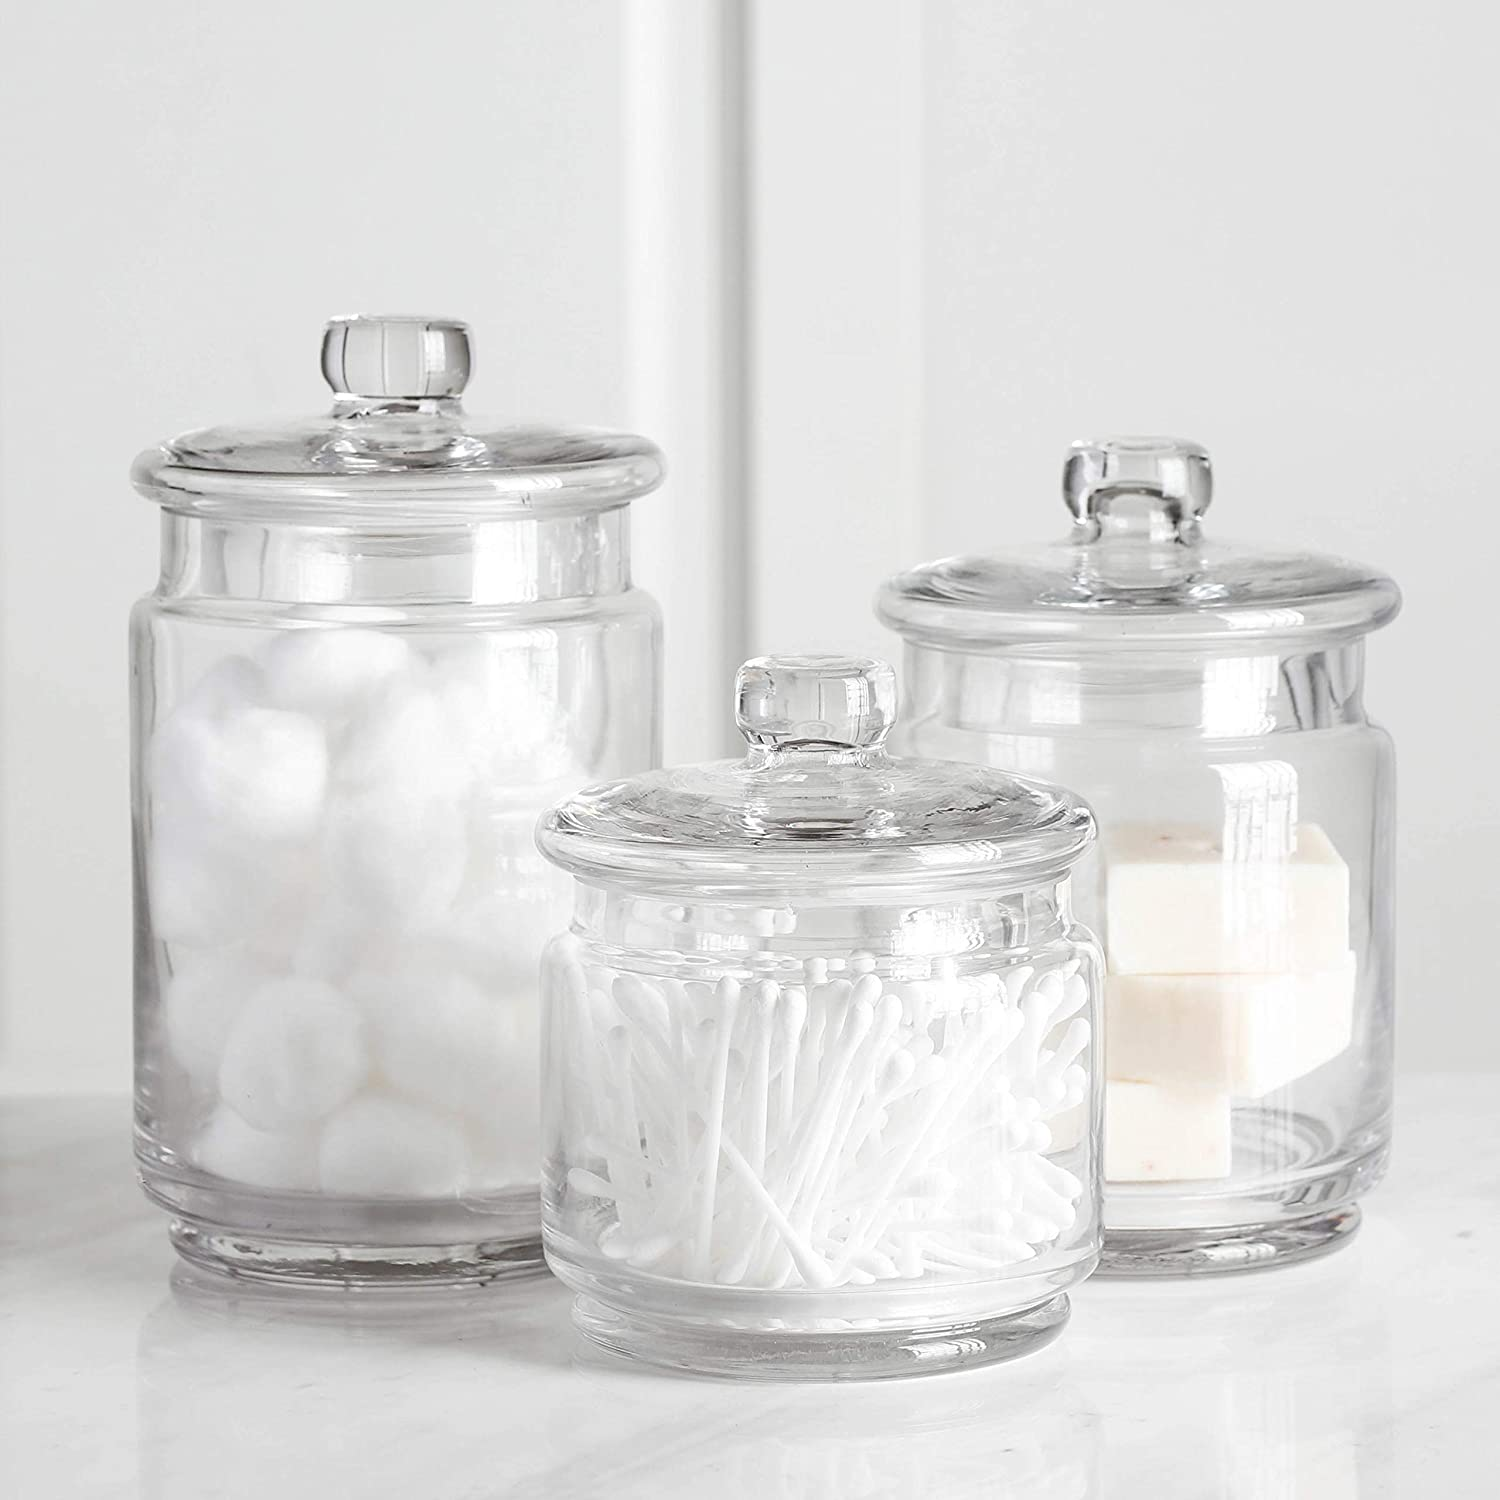 Whole Housewares Clear Glass Apothecary Jars-Cotton Jar-Bathroom Storage  Organizer Canisters Set of 4